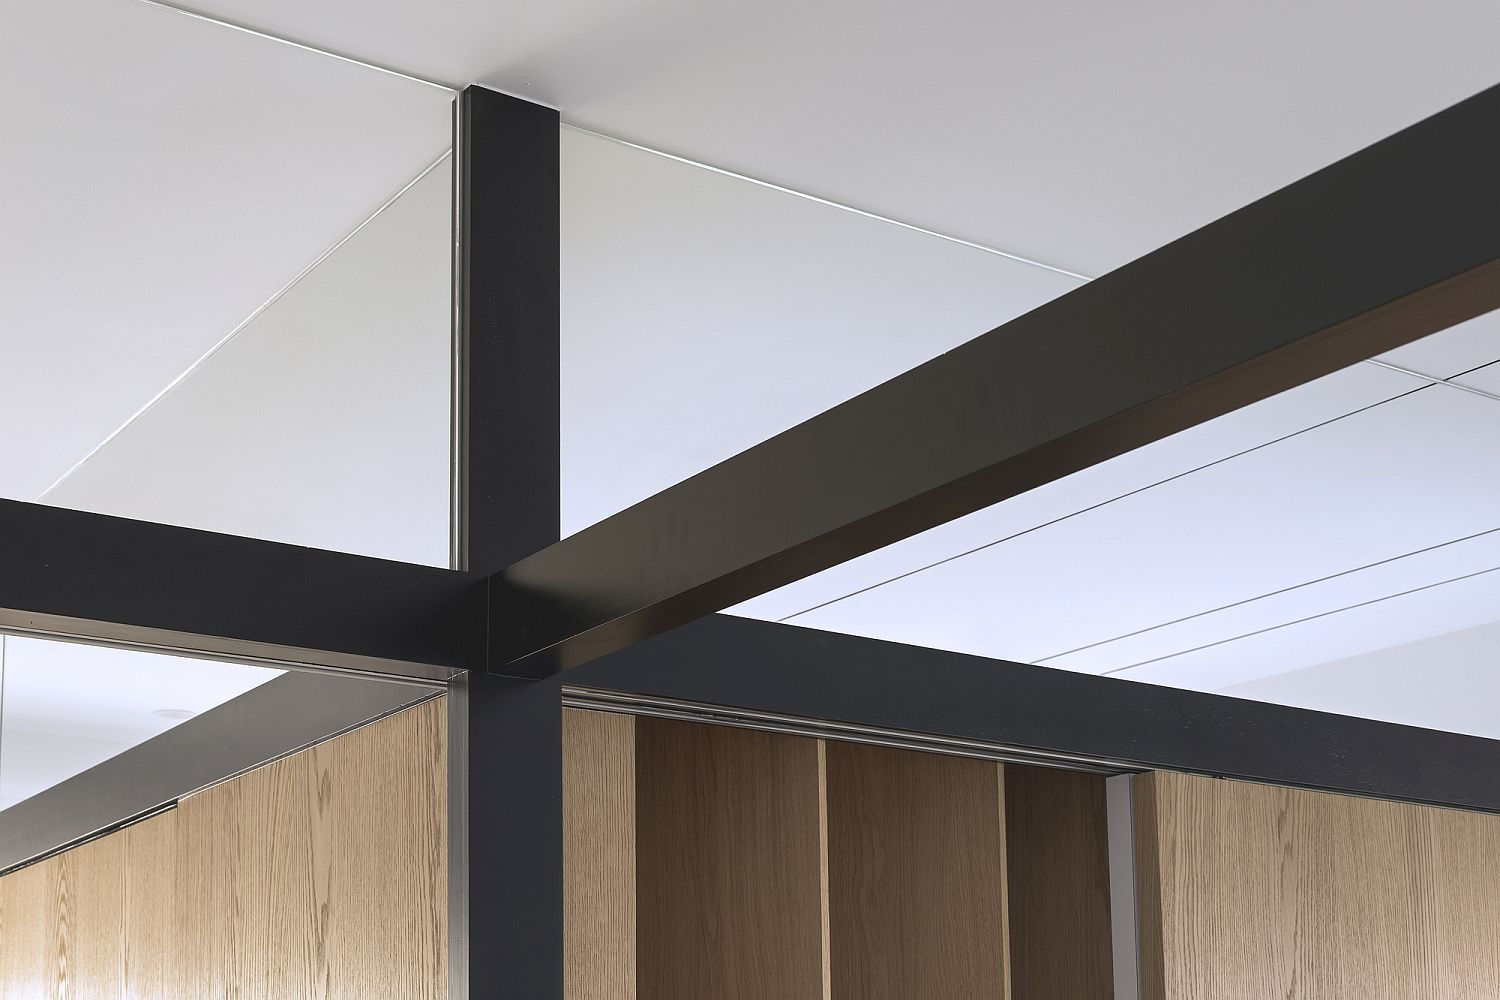 Structural steel beams inside the apartment